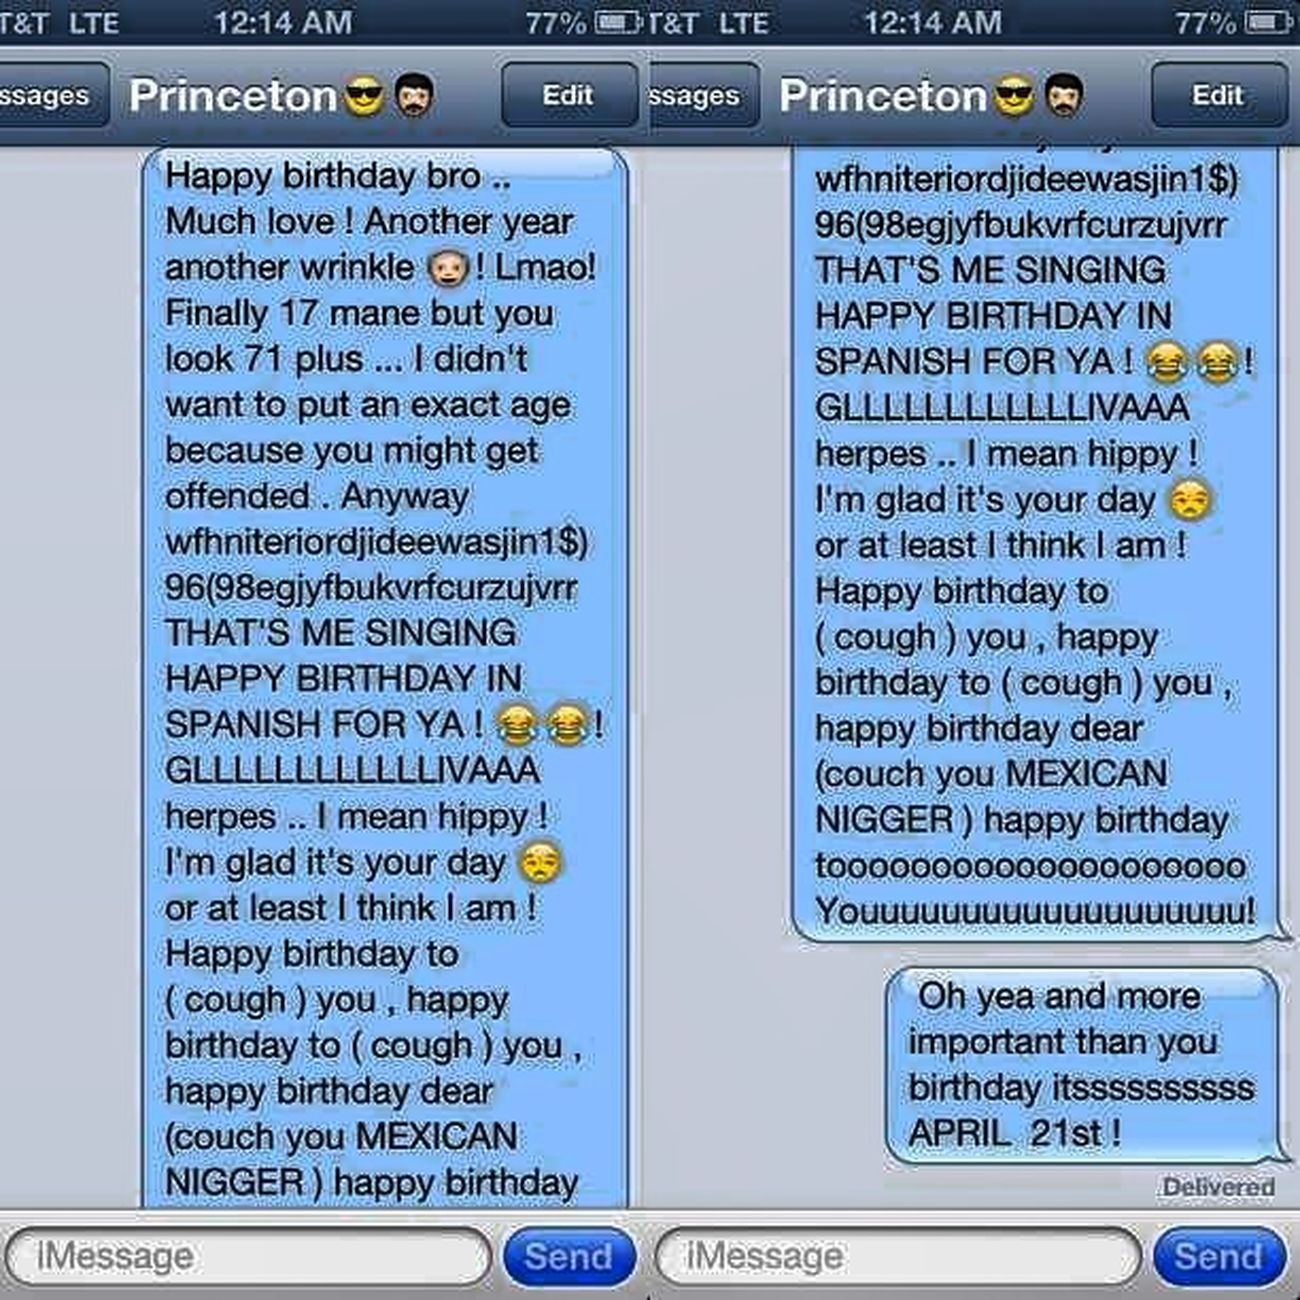 My birthday message to @princemisfit94 Mindless MINDLESS BEHAVIOR Team Mindless Princeton Birthday